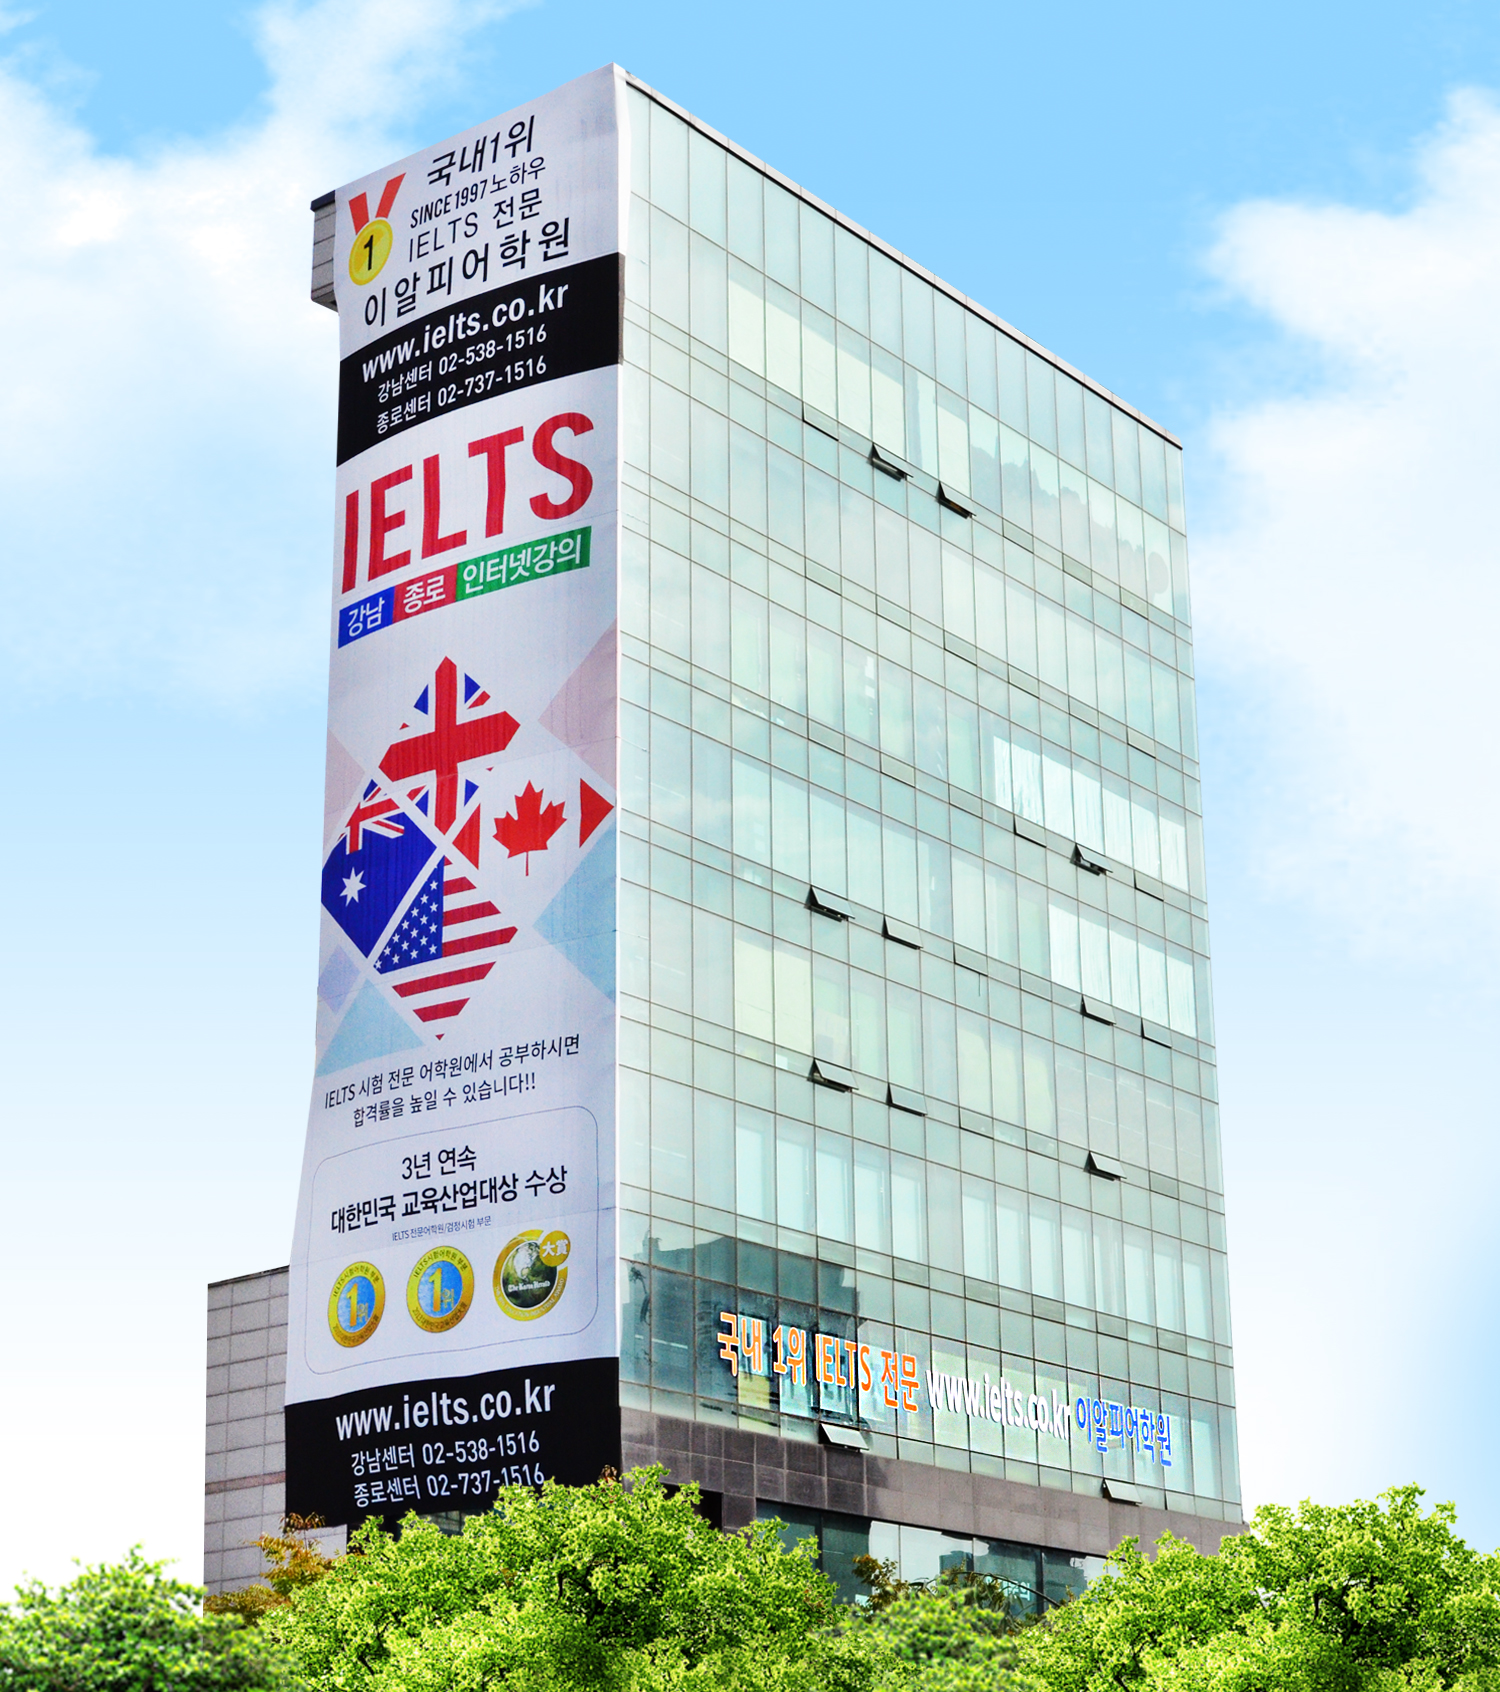 Cambridge English IELTS 11 시리즈 출시안내